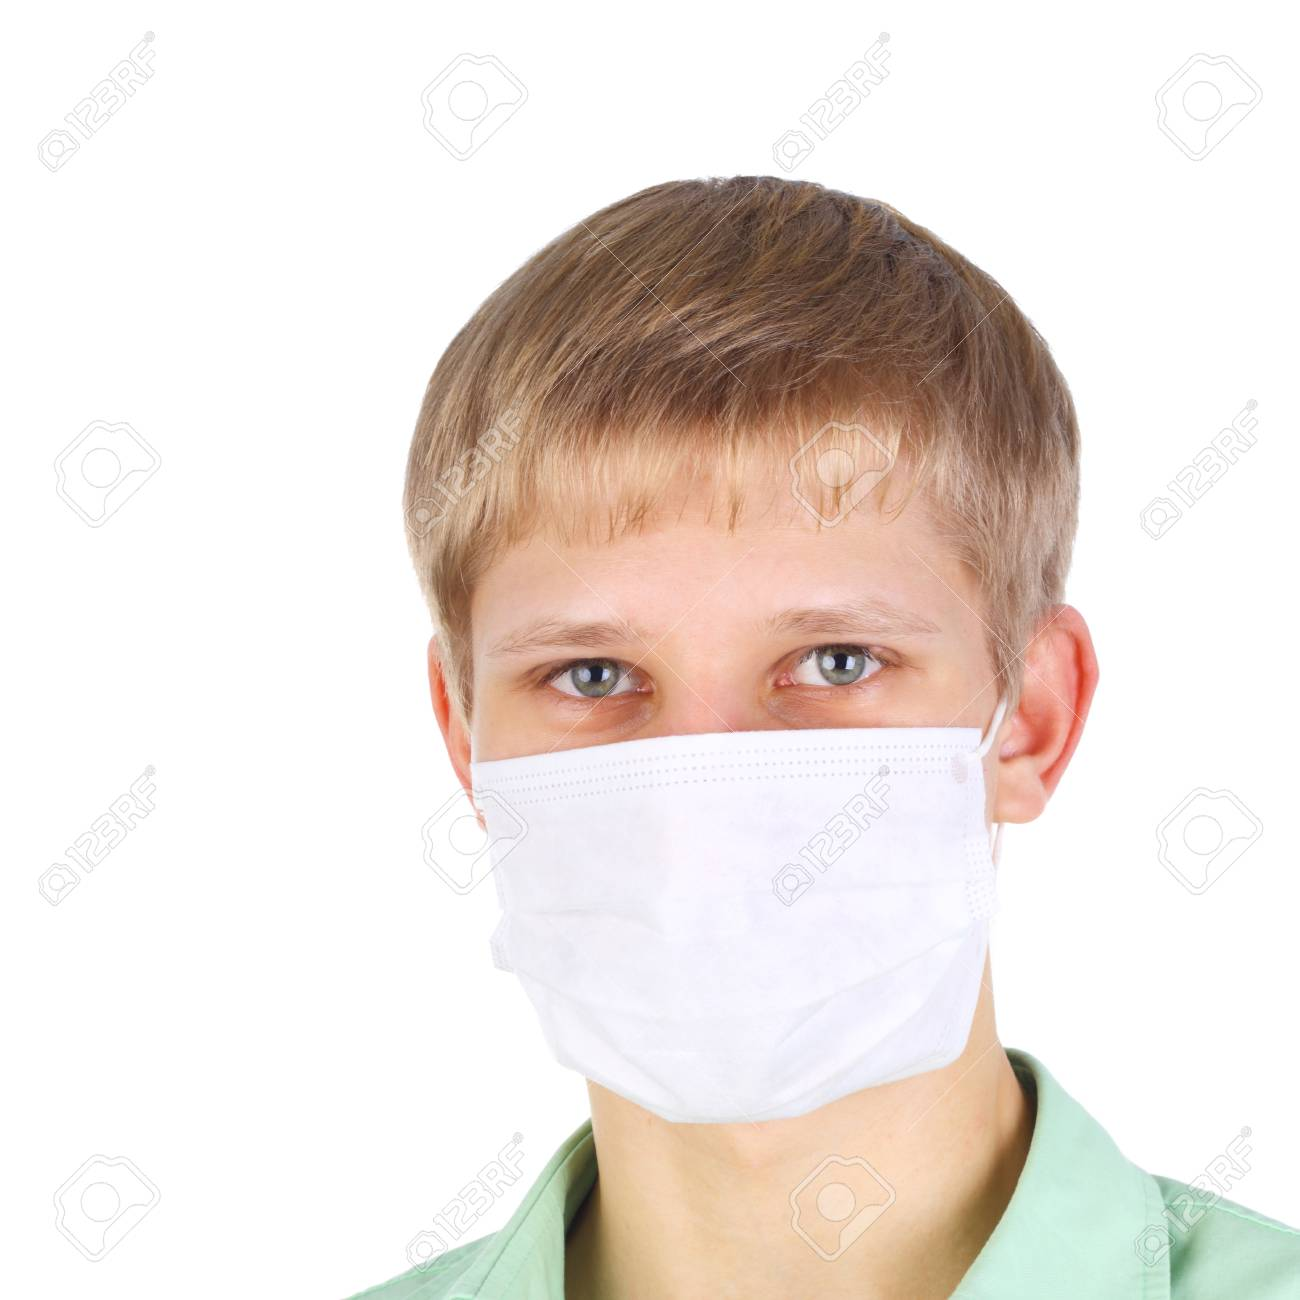 Man The In Mask Young Handsome Medical Of Image Closeup